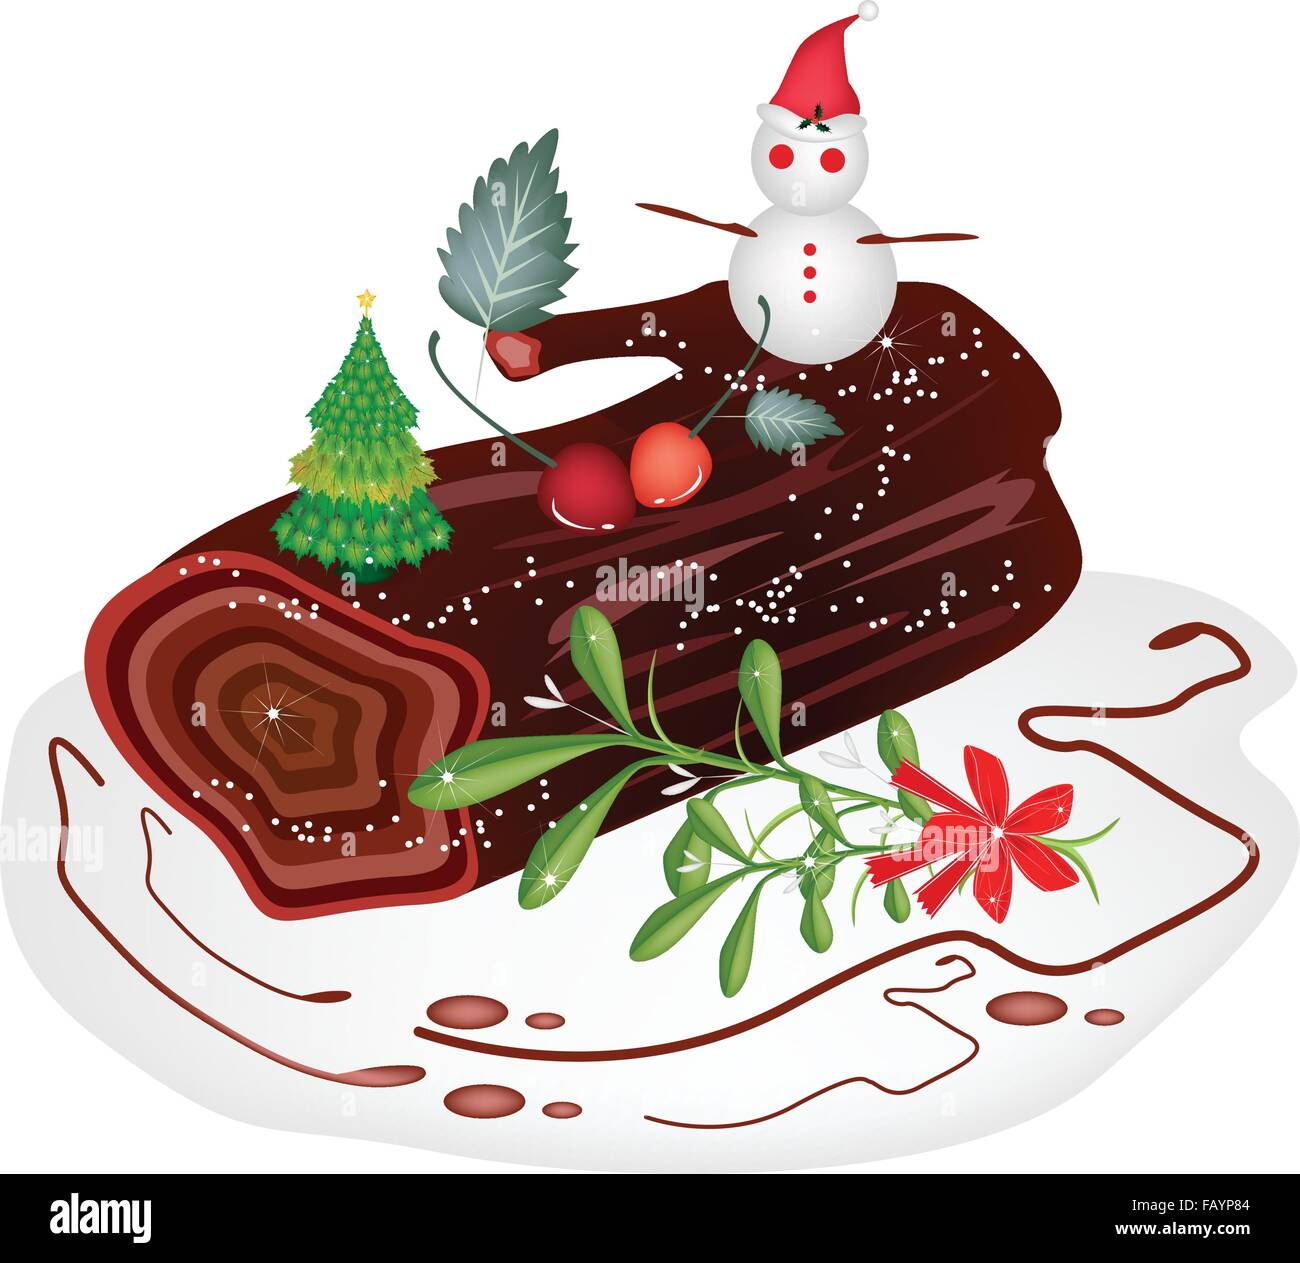 Christmas Log Cake Decoration